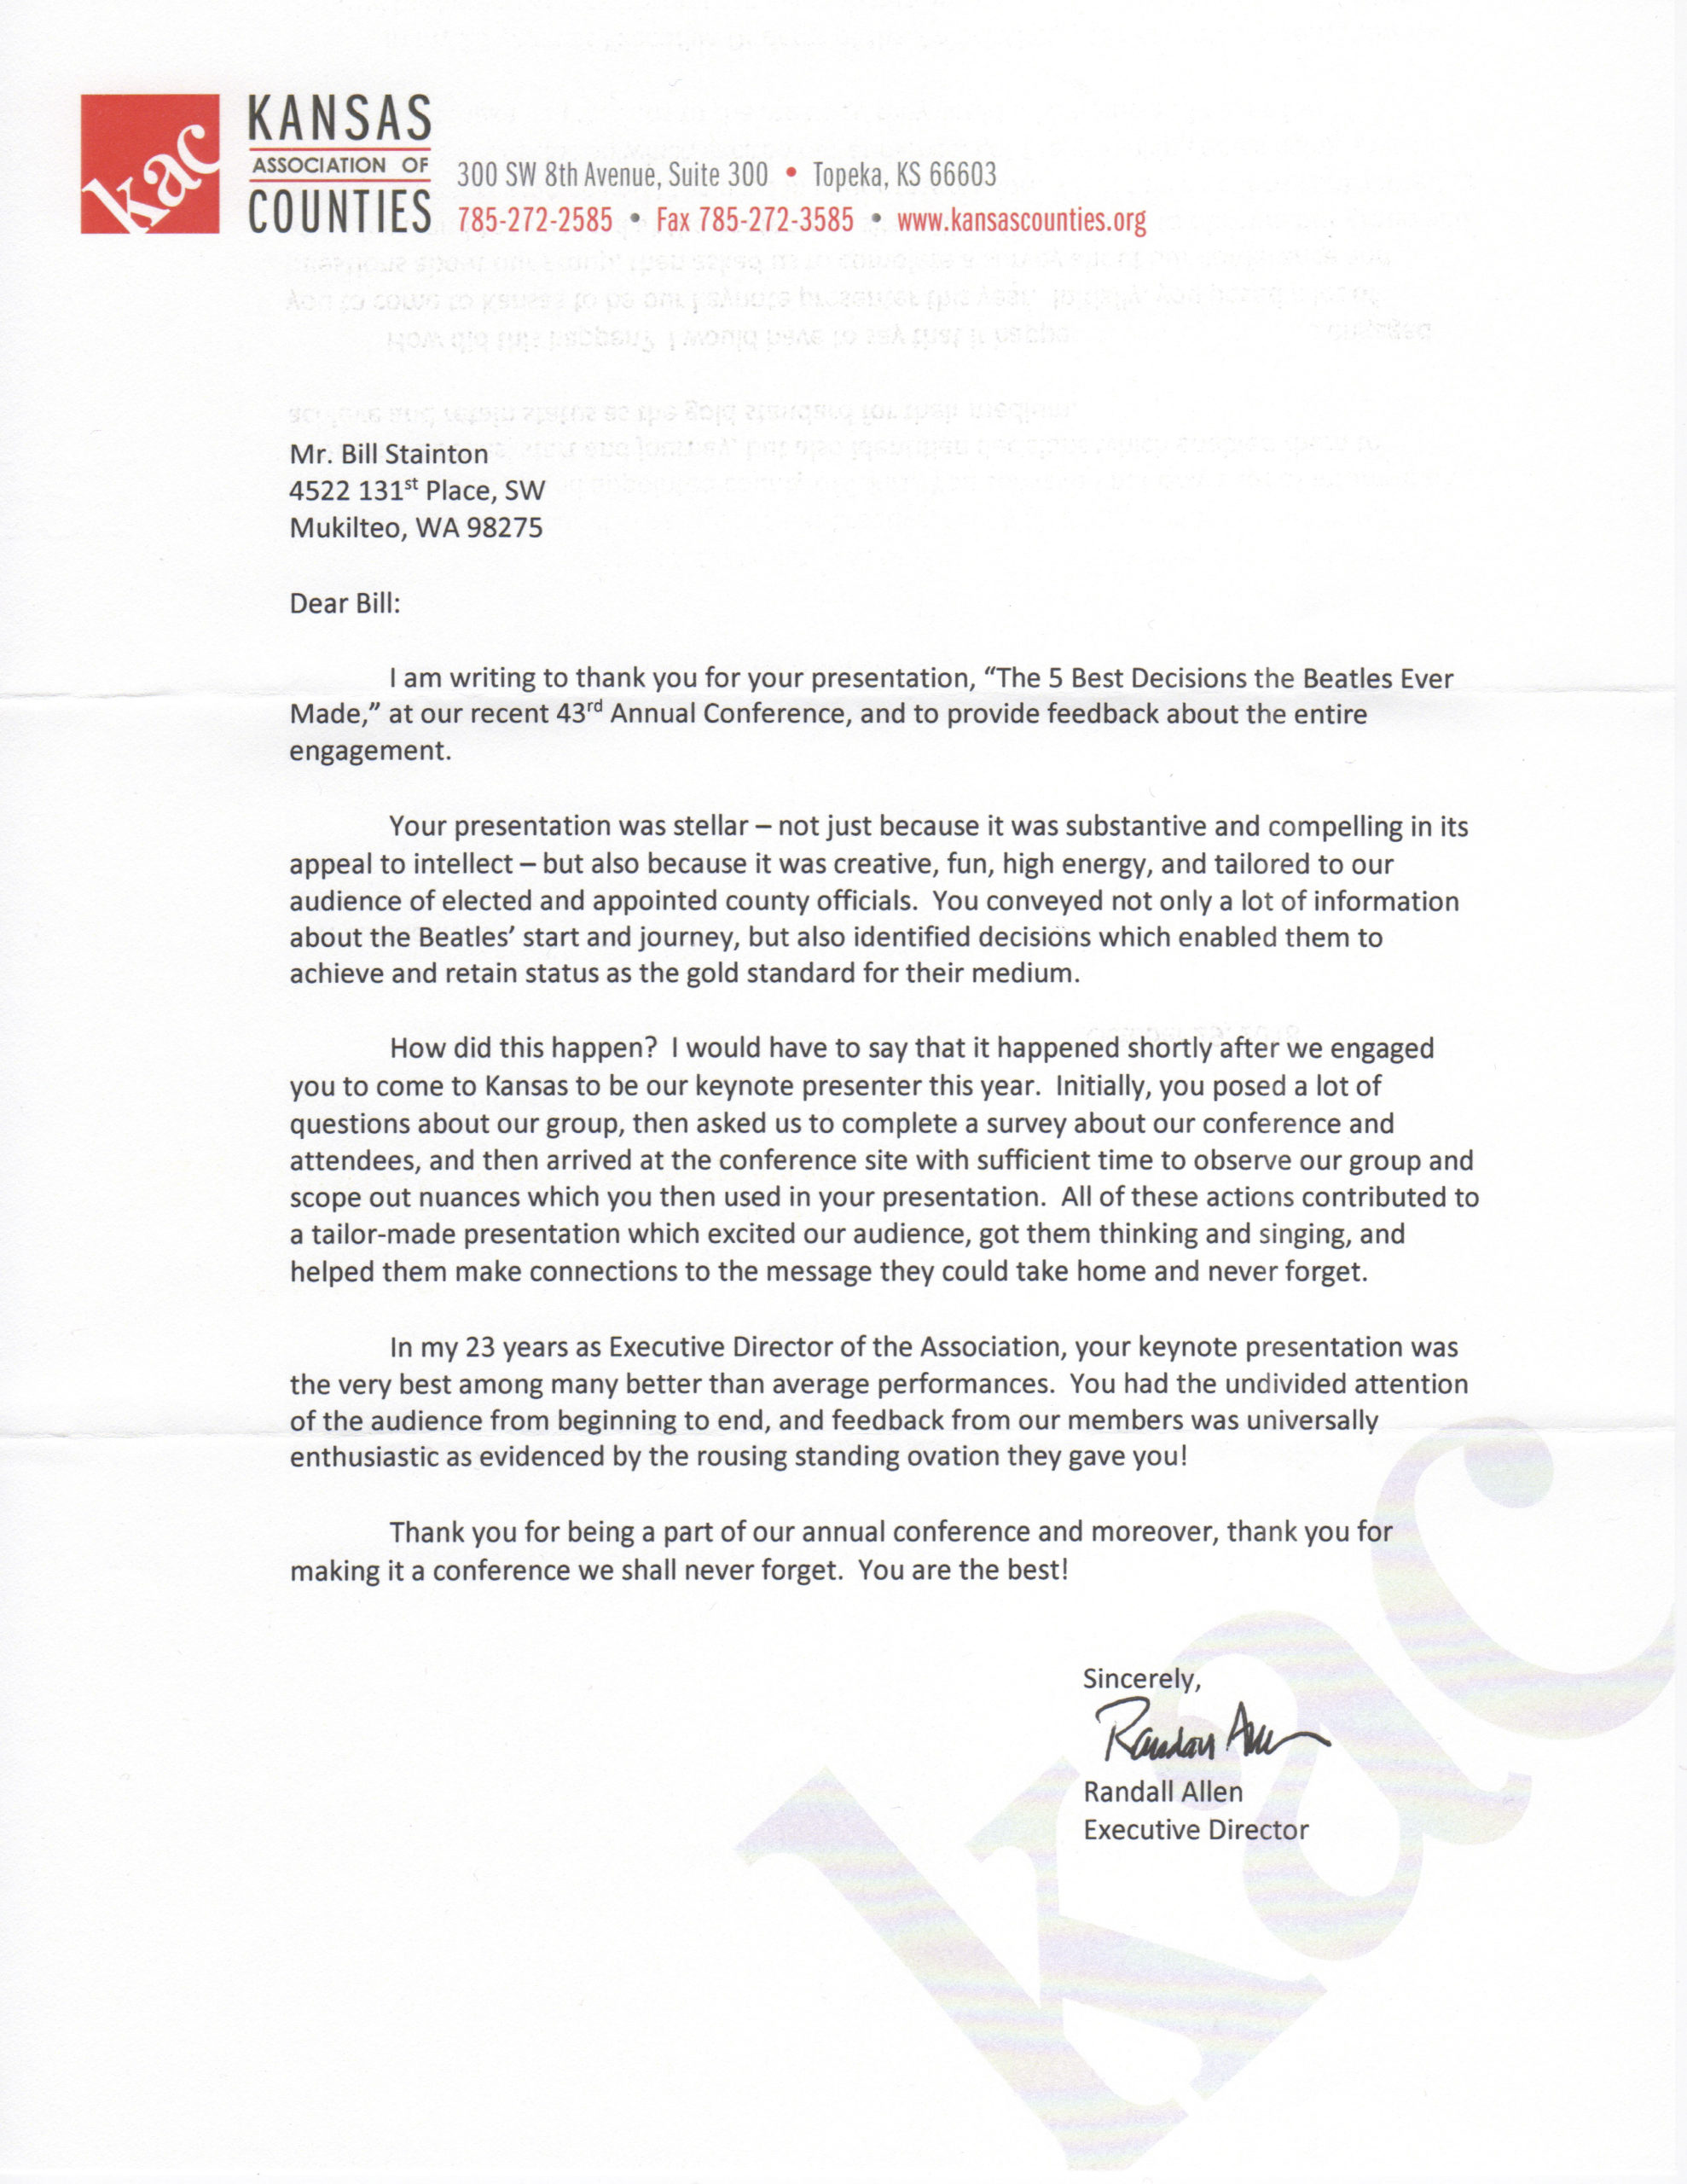 Best Recommendation Letter Ever from billstainton.com